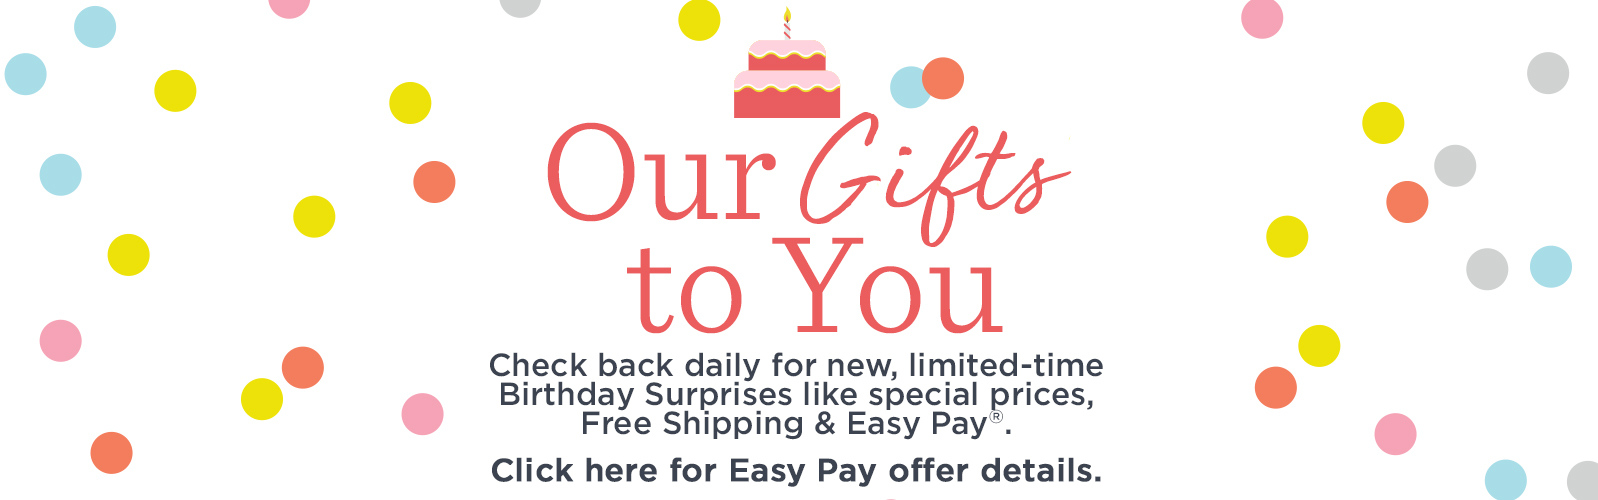 Our Gifts to You.  Check back daily for new, limited-time Birthday Surprises like special prices, Free Shipping & Easy Pay®.  Click here for Easy Pay offer details.